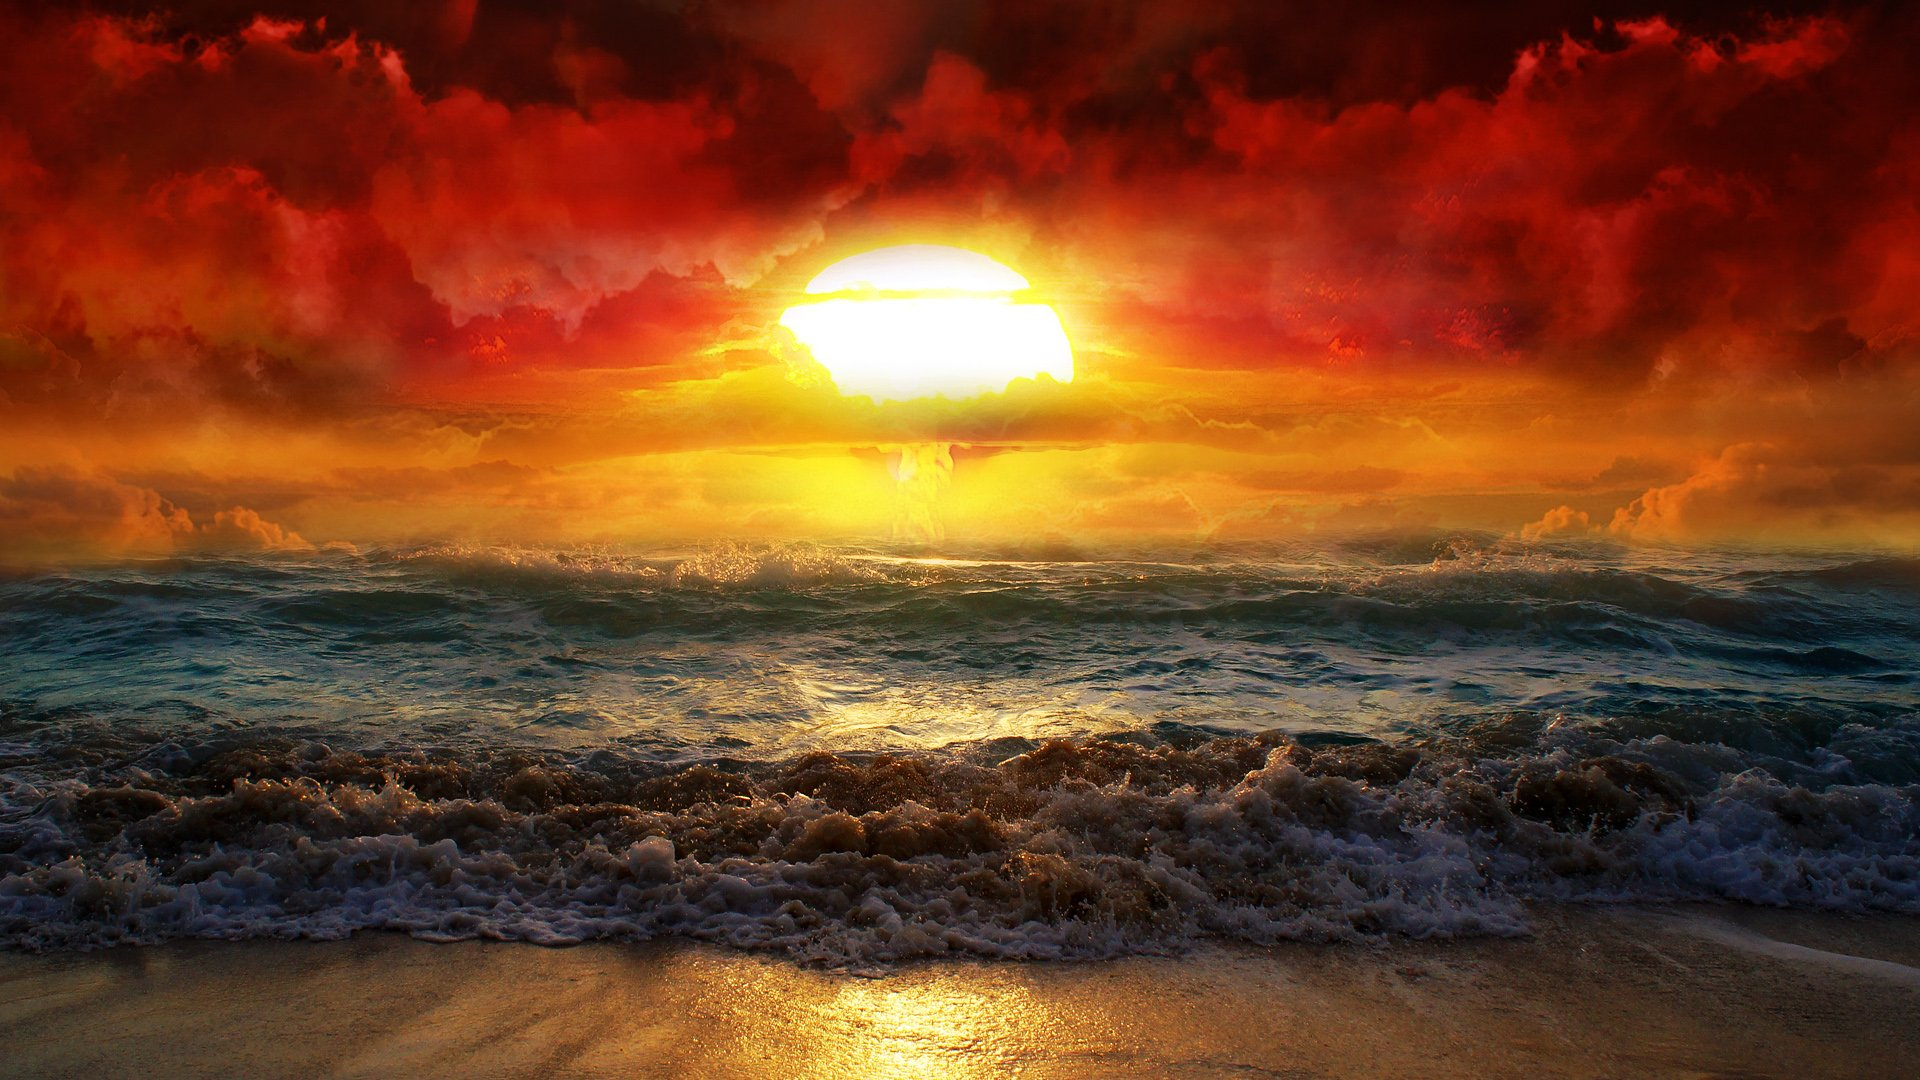 The Ocean Sunrise HD Wallpaper 1920x1080